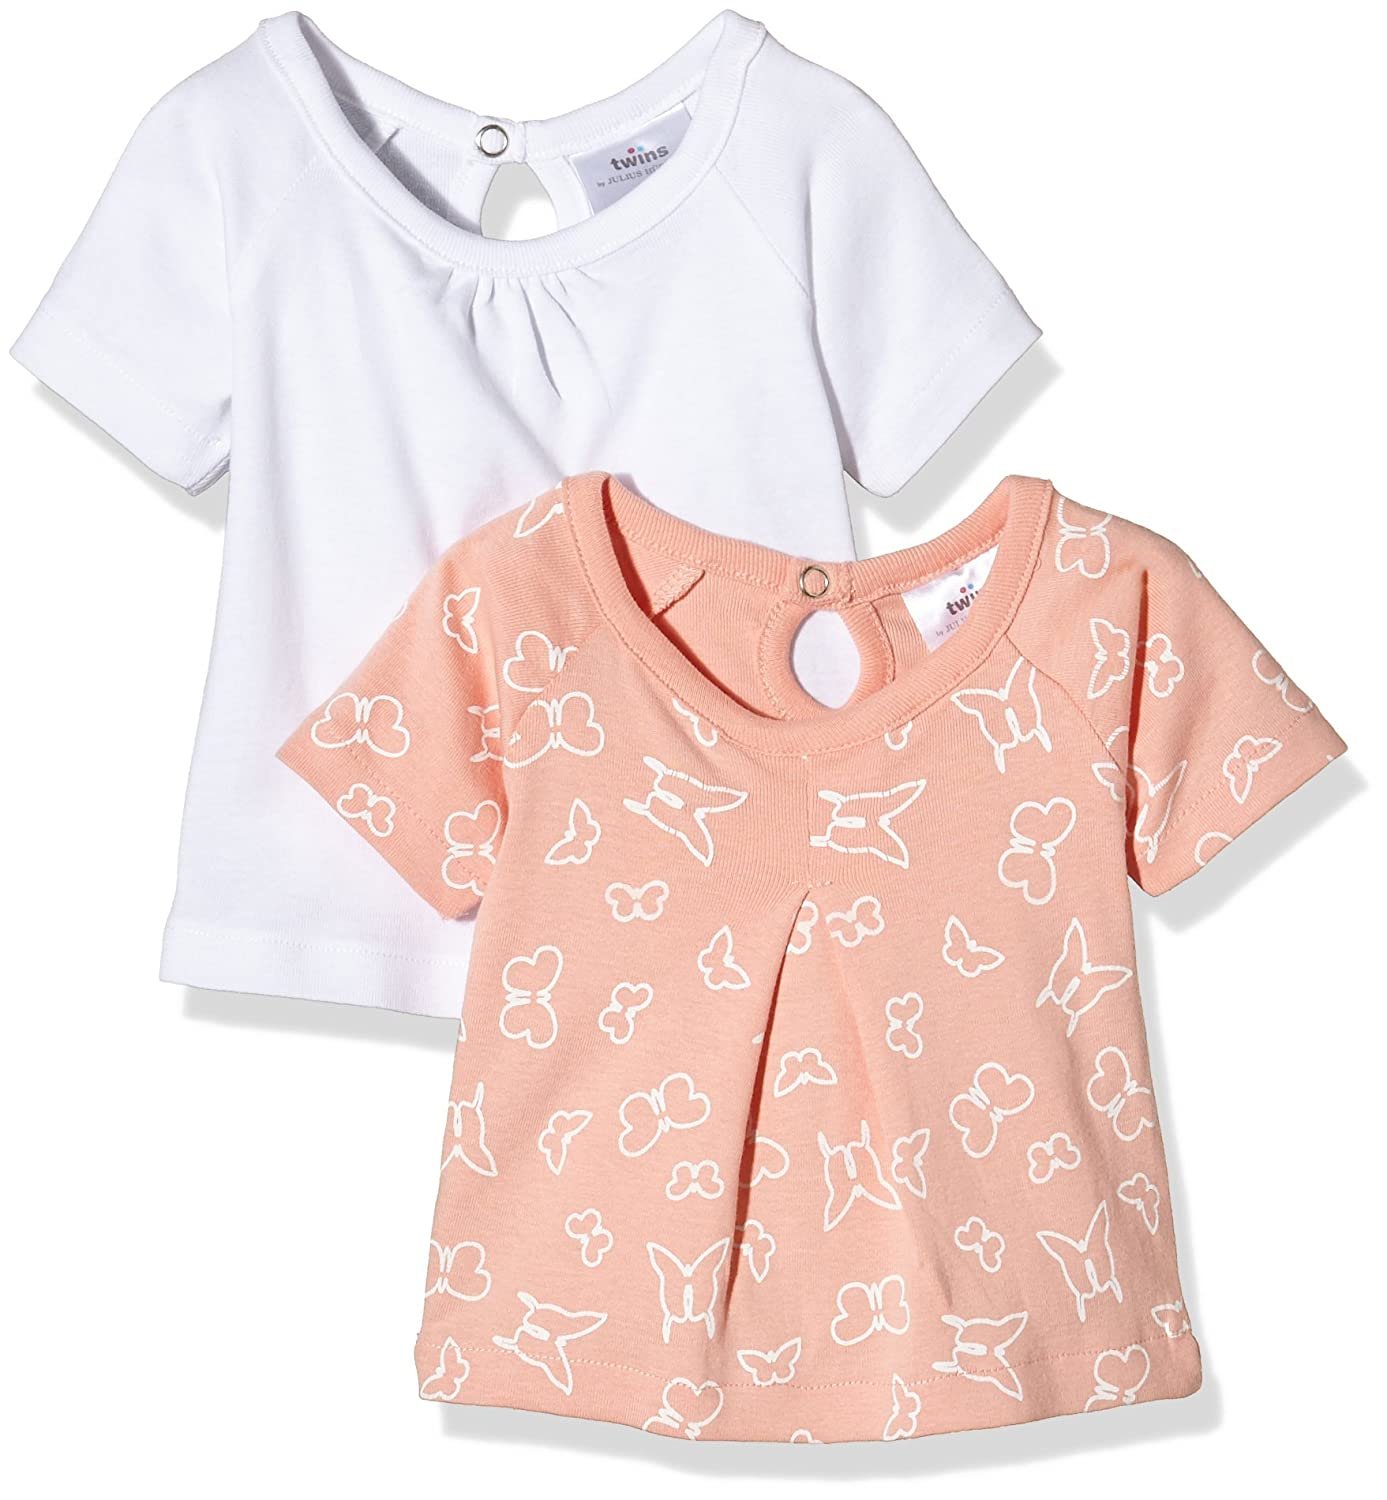 Twins Baby Girls Short Sleeve T-Shirt, 2-Pack Julius Hüpeden GmbH 123738